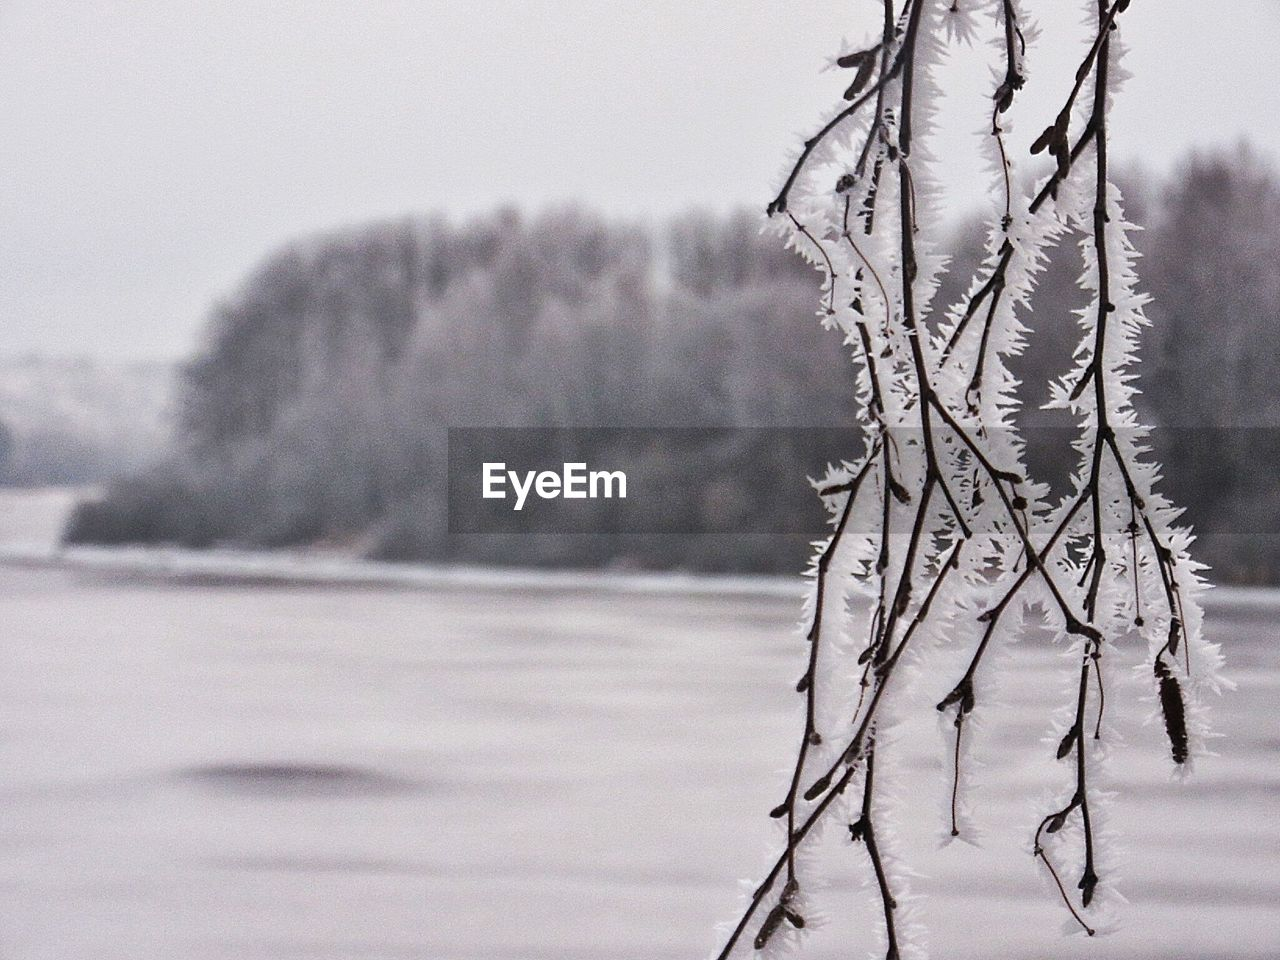 Close-up of frozen twigs against river and trees